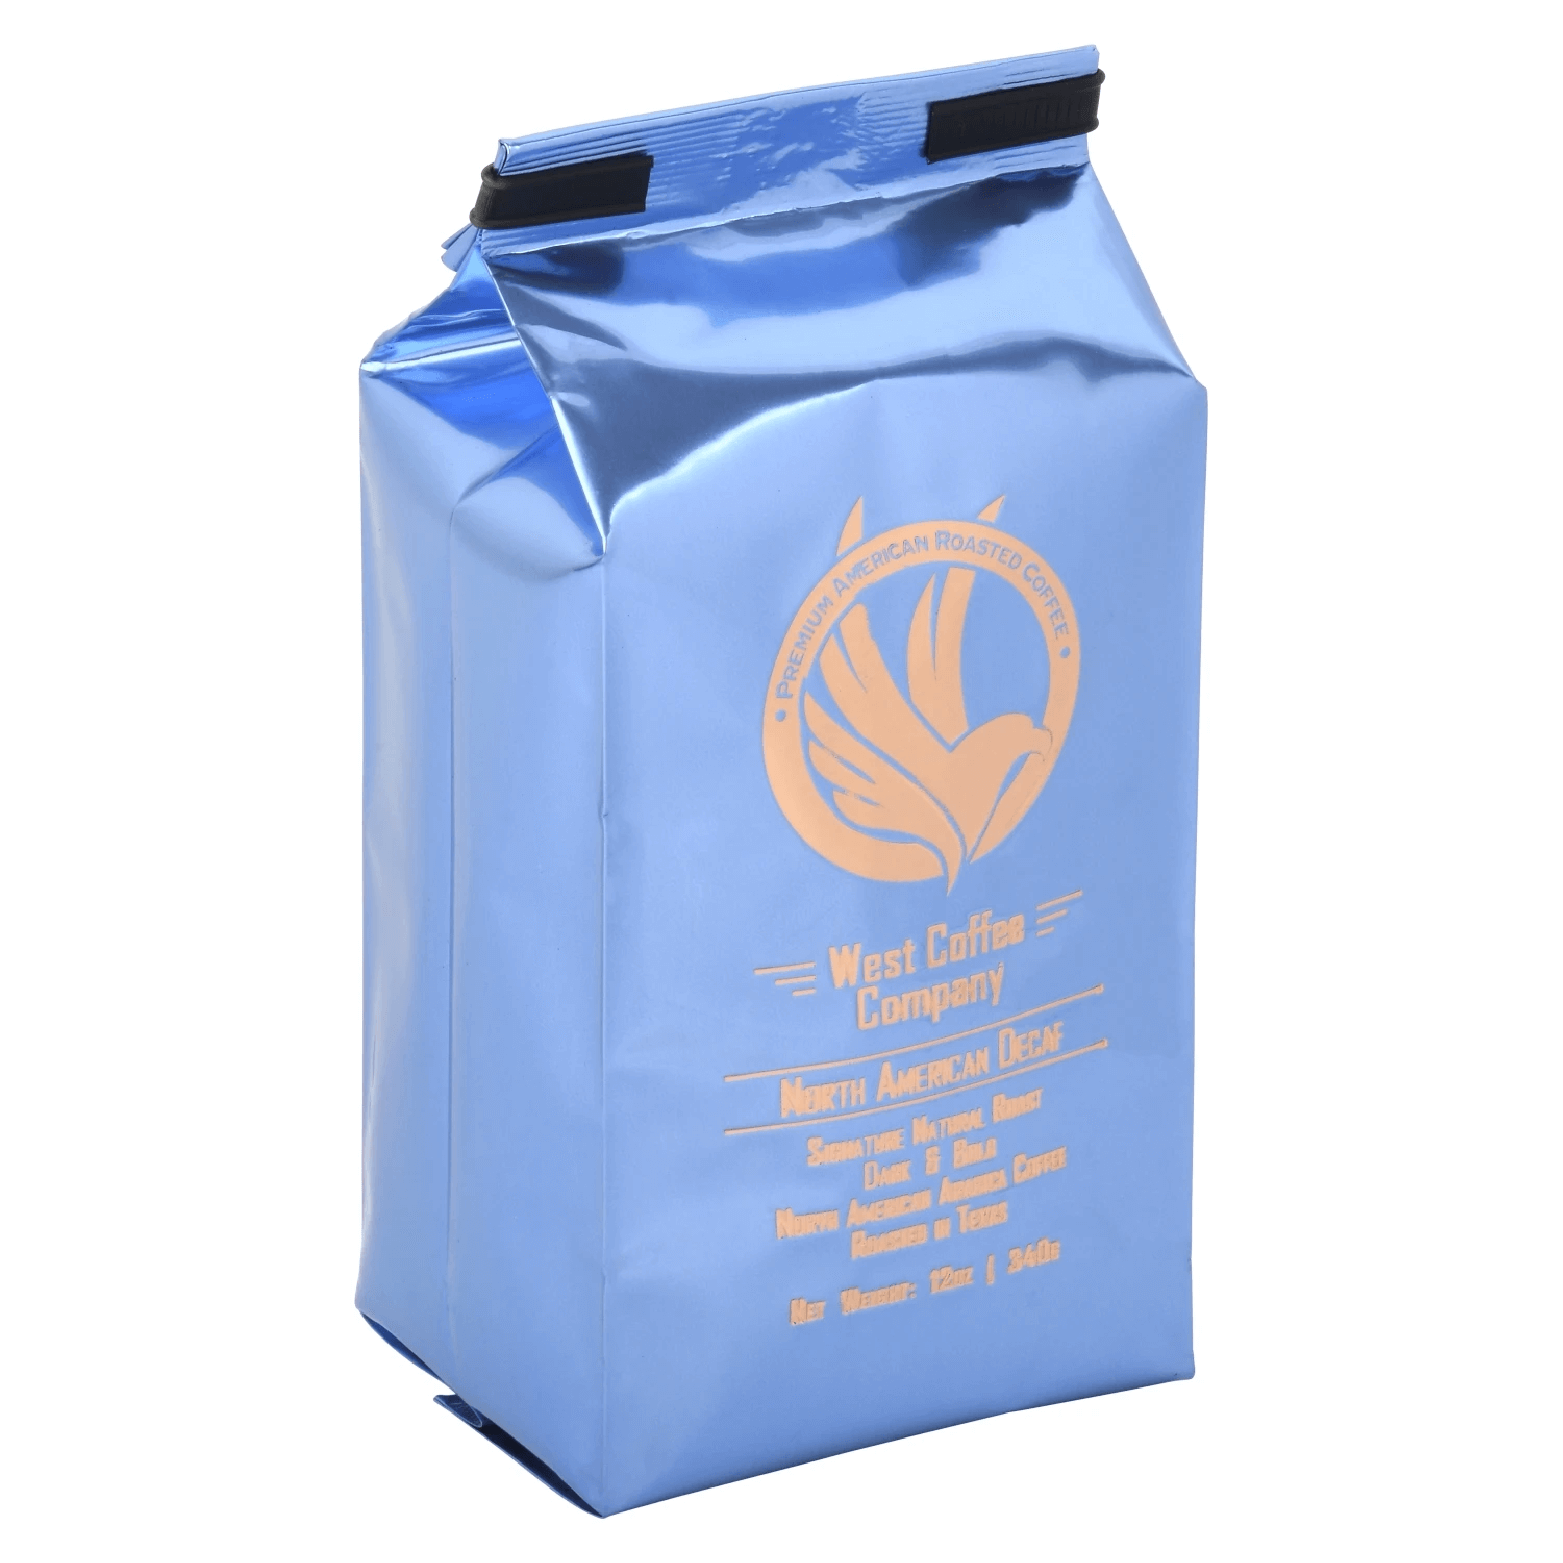 North American Decaf from West Coffee Company